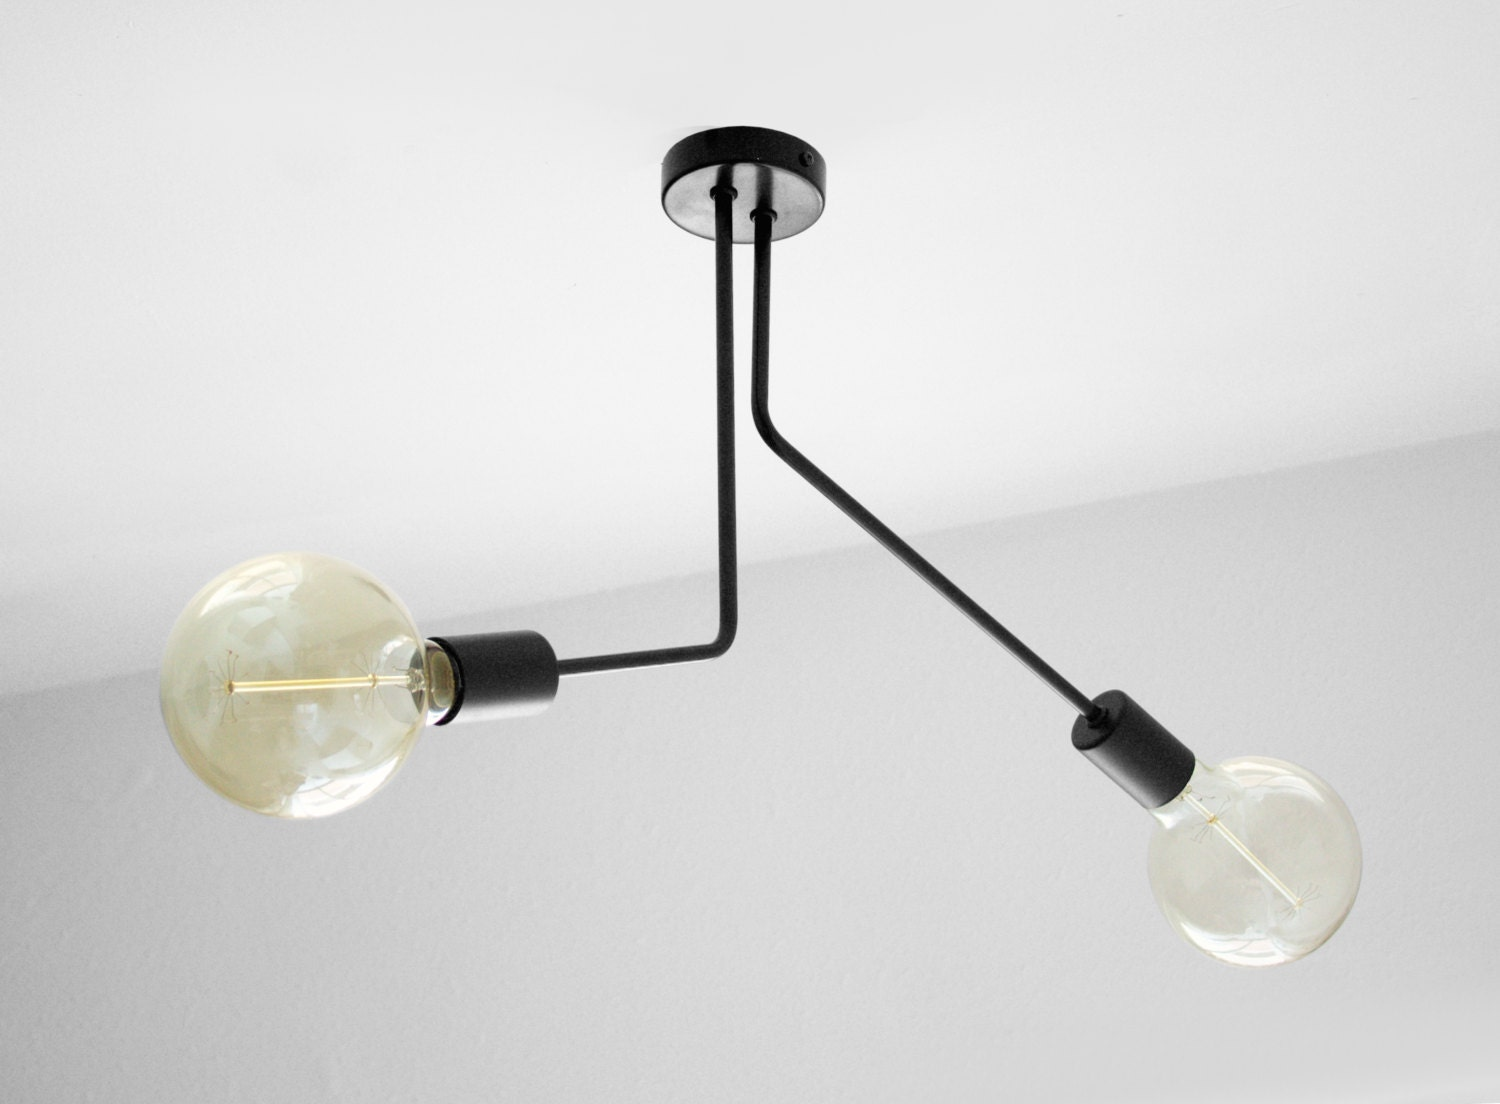 Black Geometric Ceiling Light 2 Arms Ceiling Semi Flush